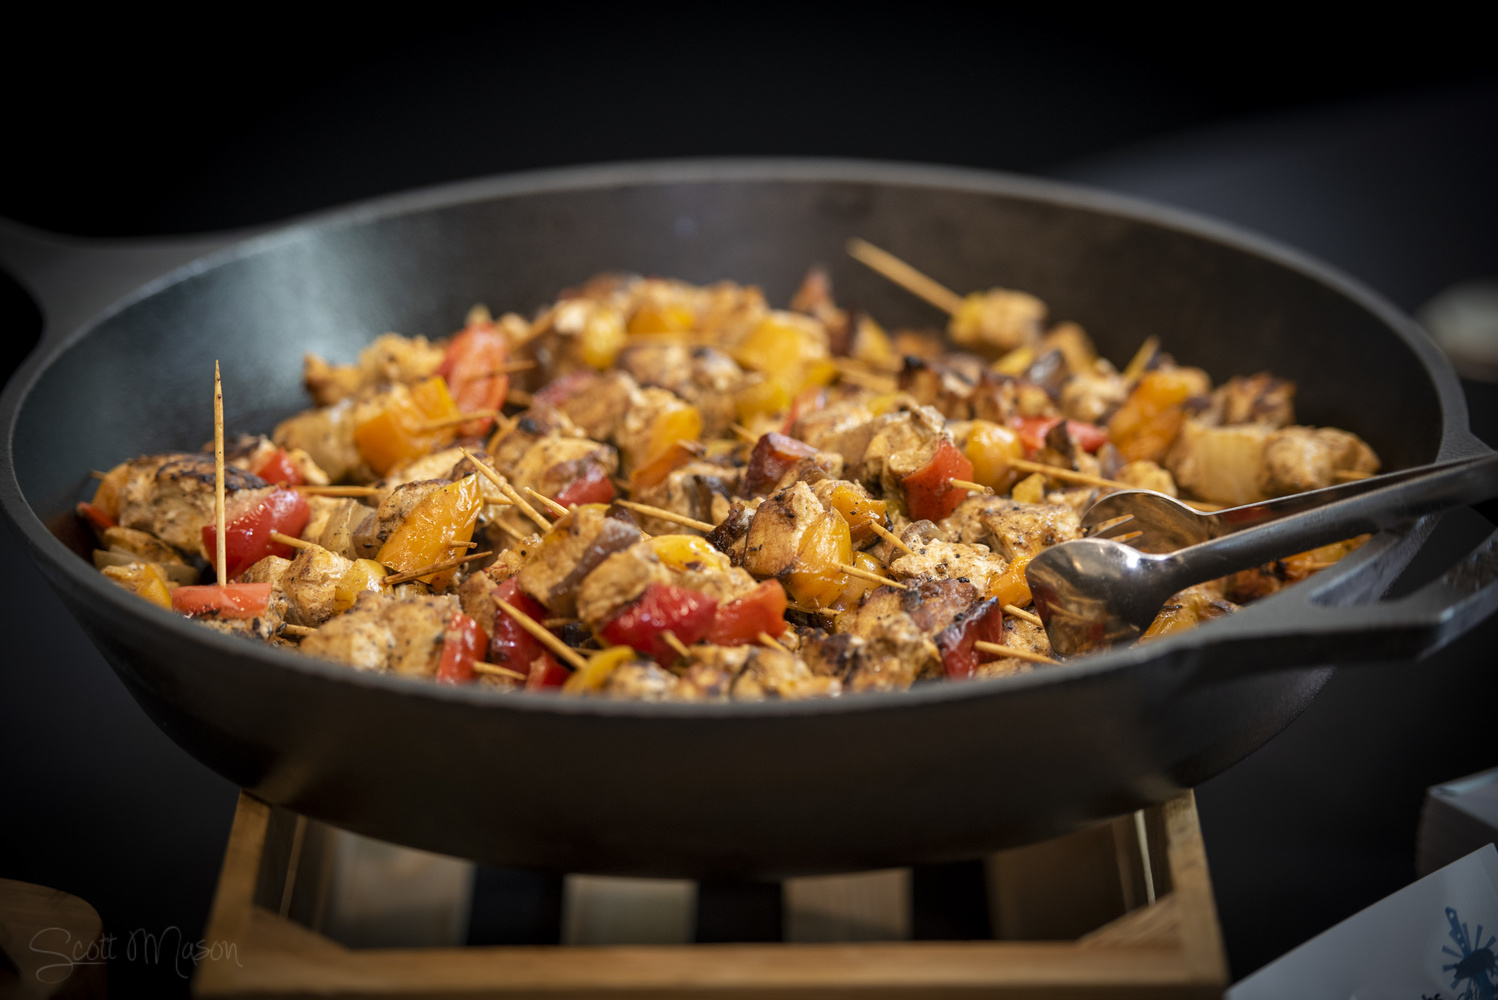 a cast iron skillet with kebabs cooking on it